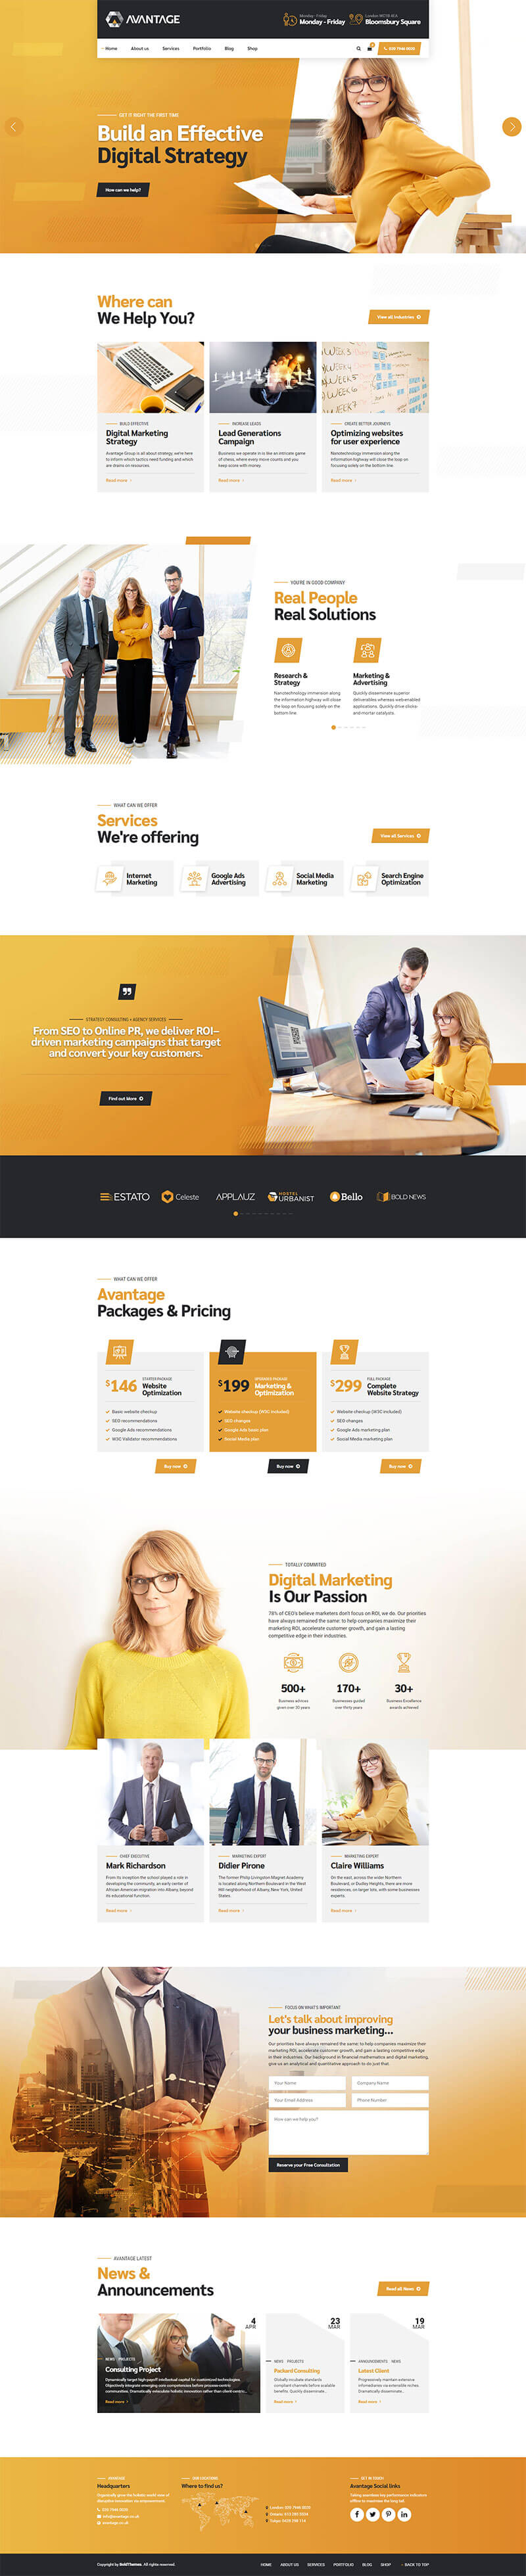 https://avantage.bold-themes.com/wp-content/uploads/2019/05/demo-02-marketing.jpg